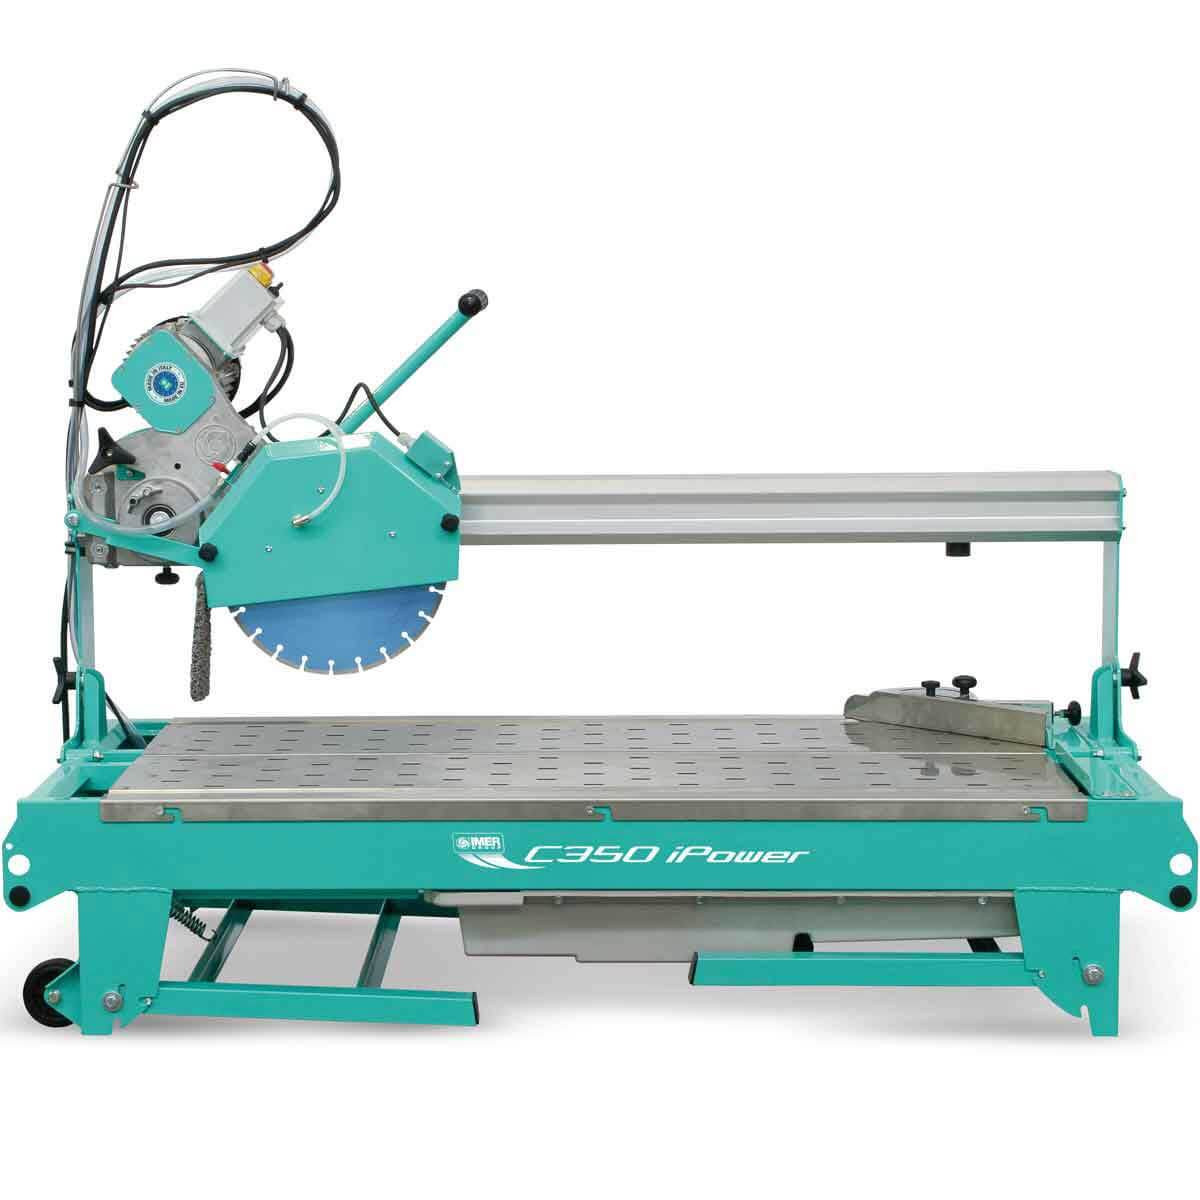 Imer Combicut cutting assembly with handle